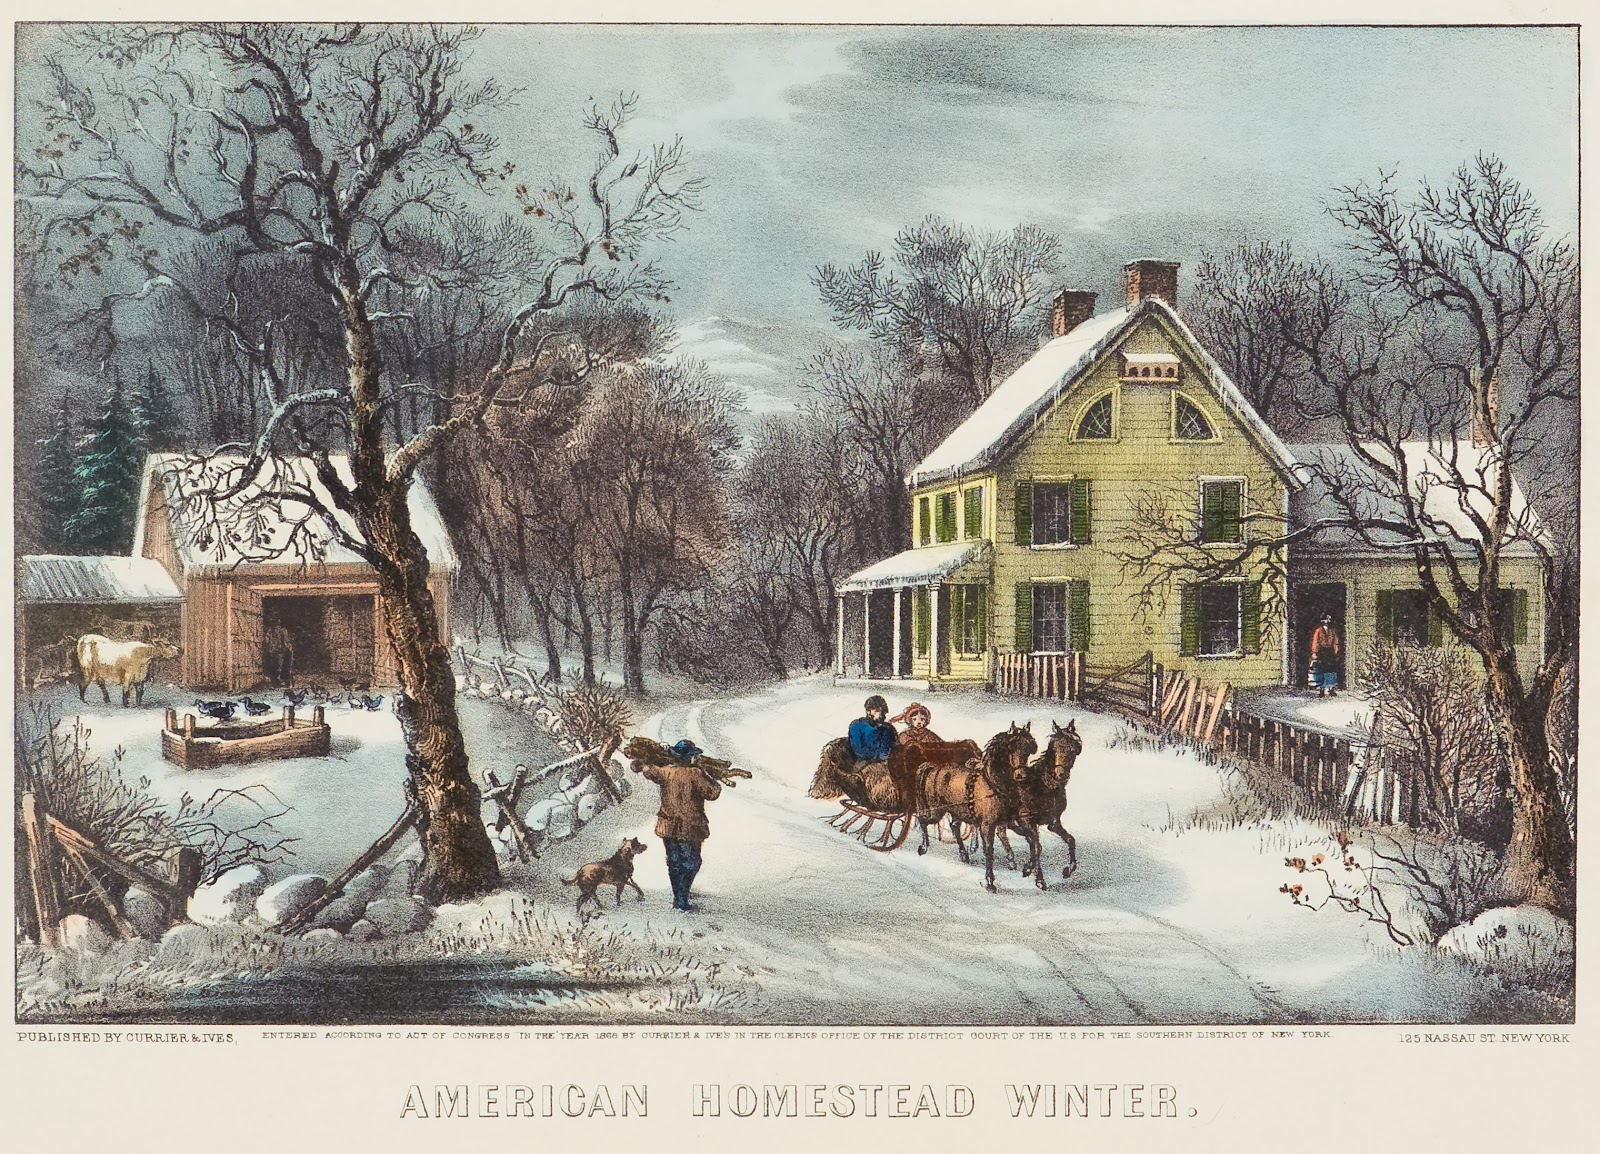 American Homestead, Winter, by Currier & Ives, 1868